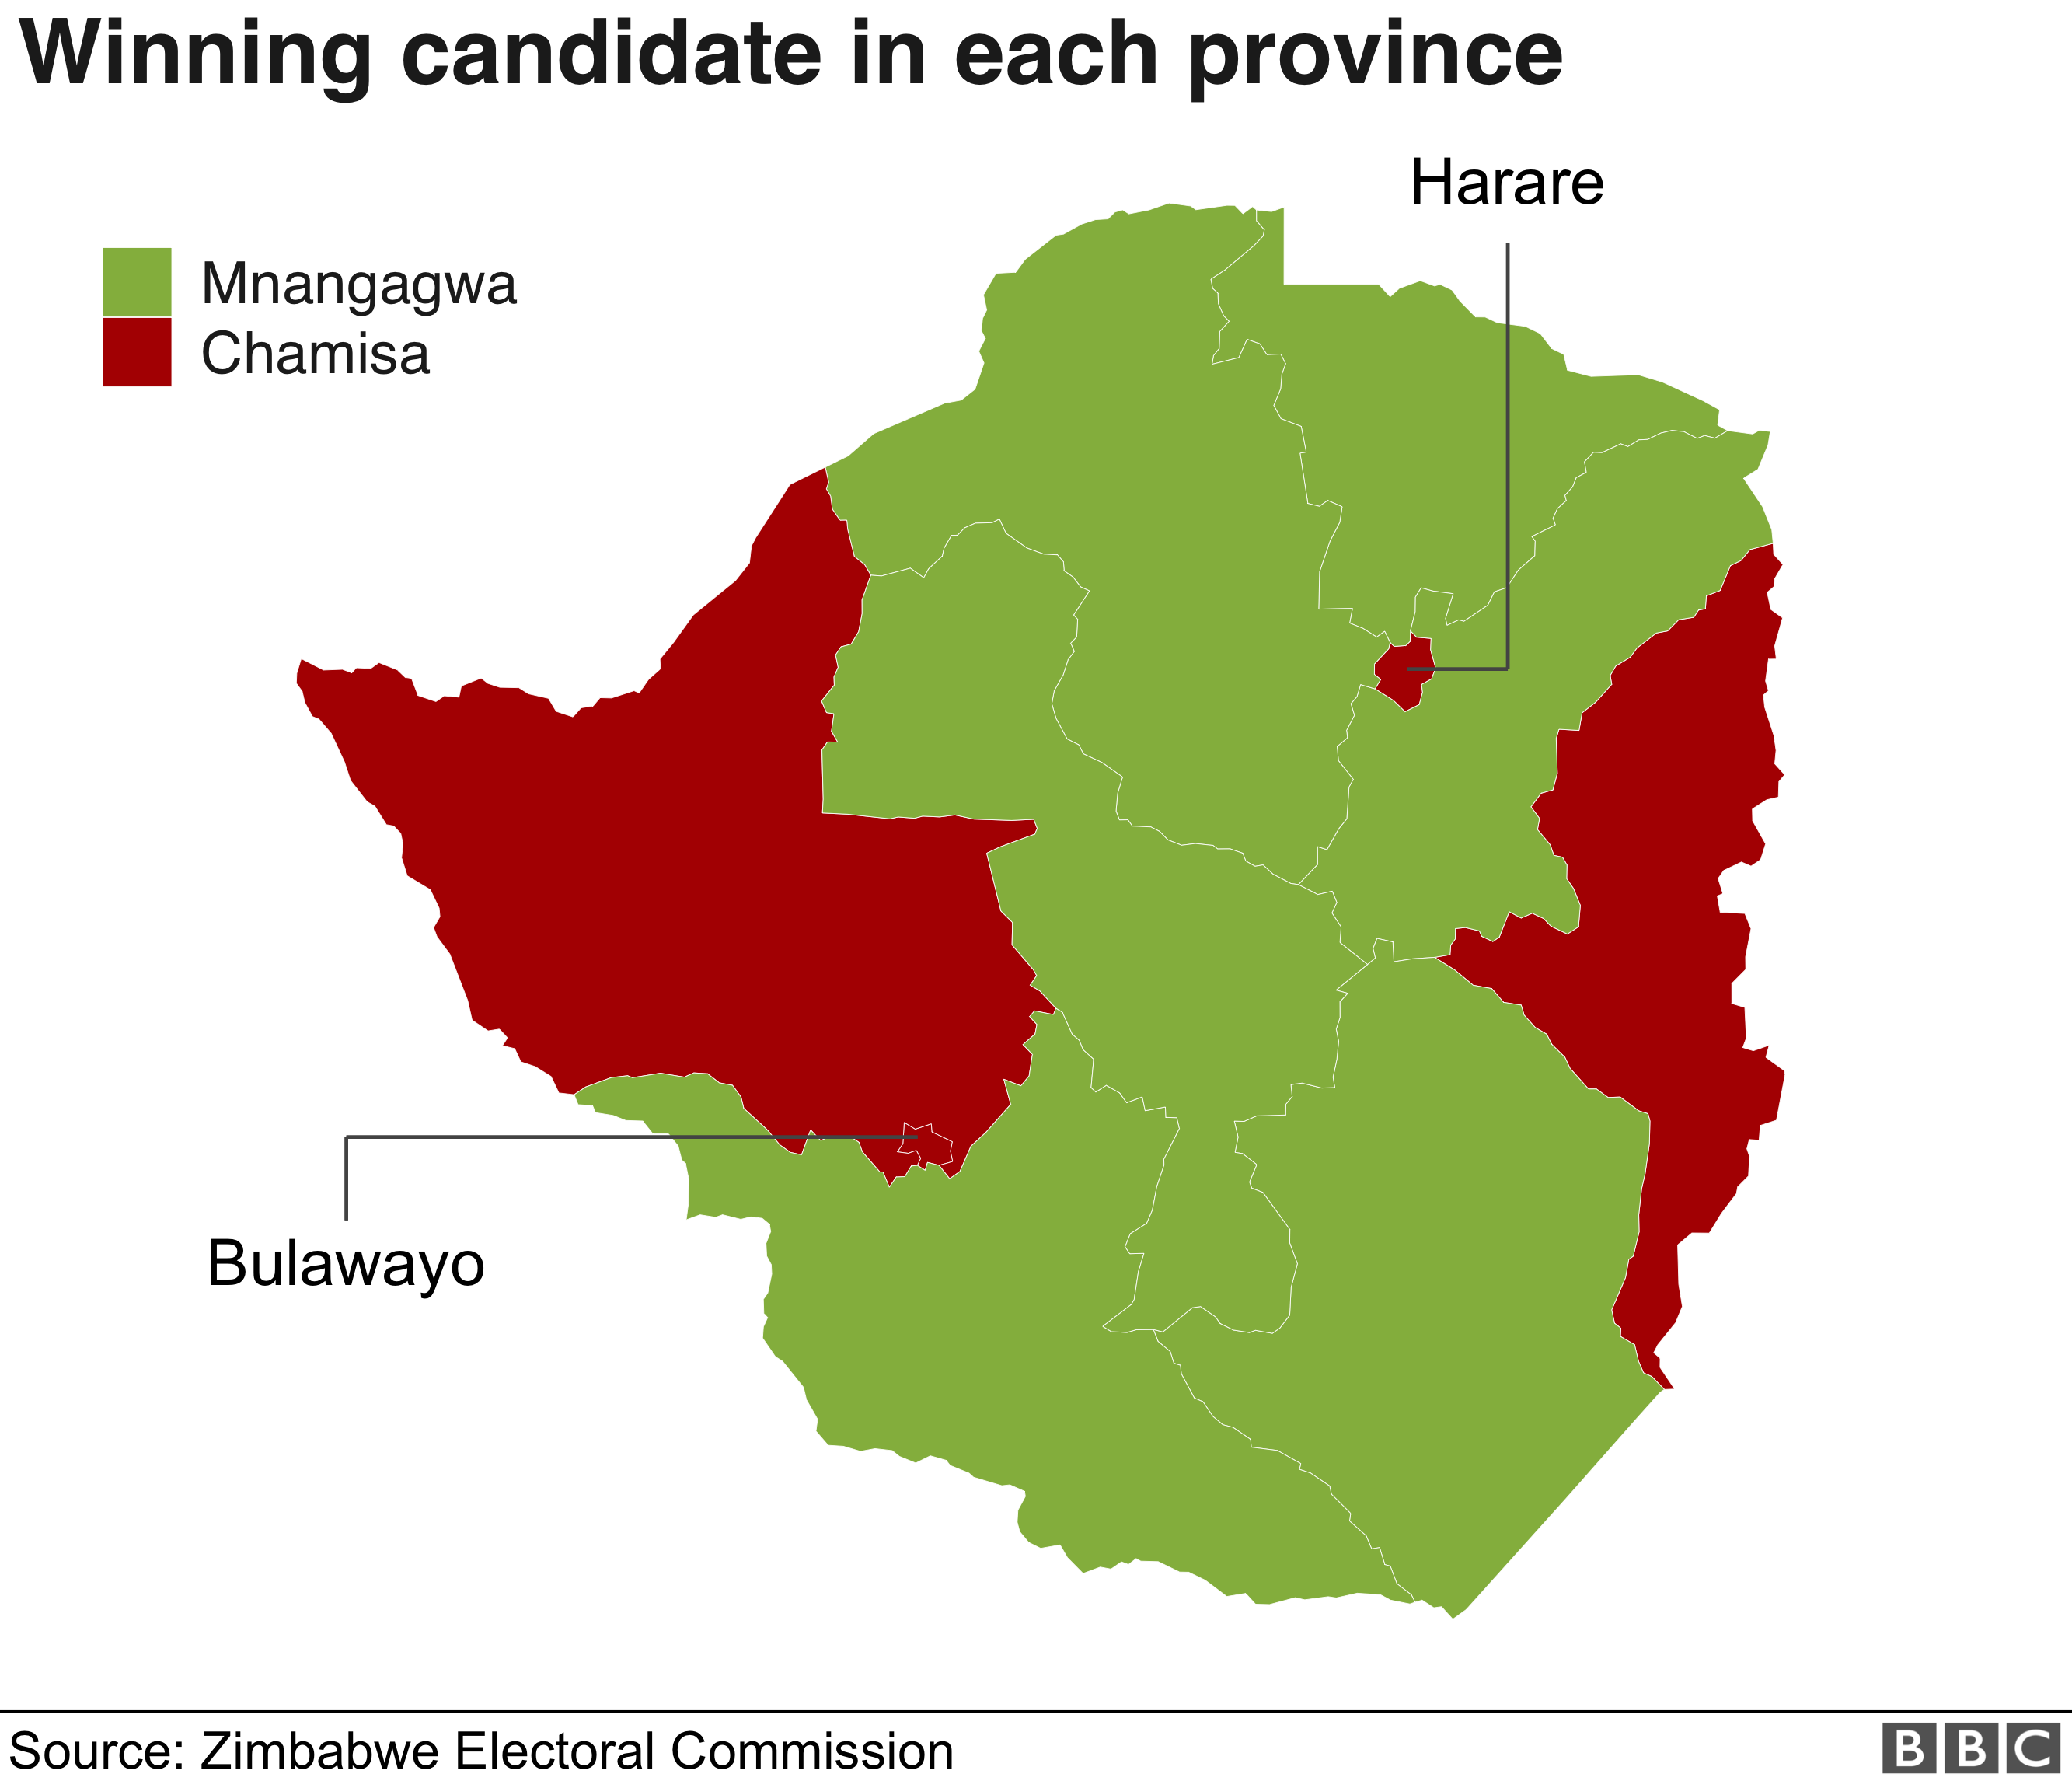 ZImbabwe presidential election results map